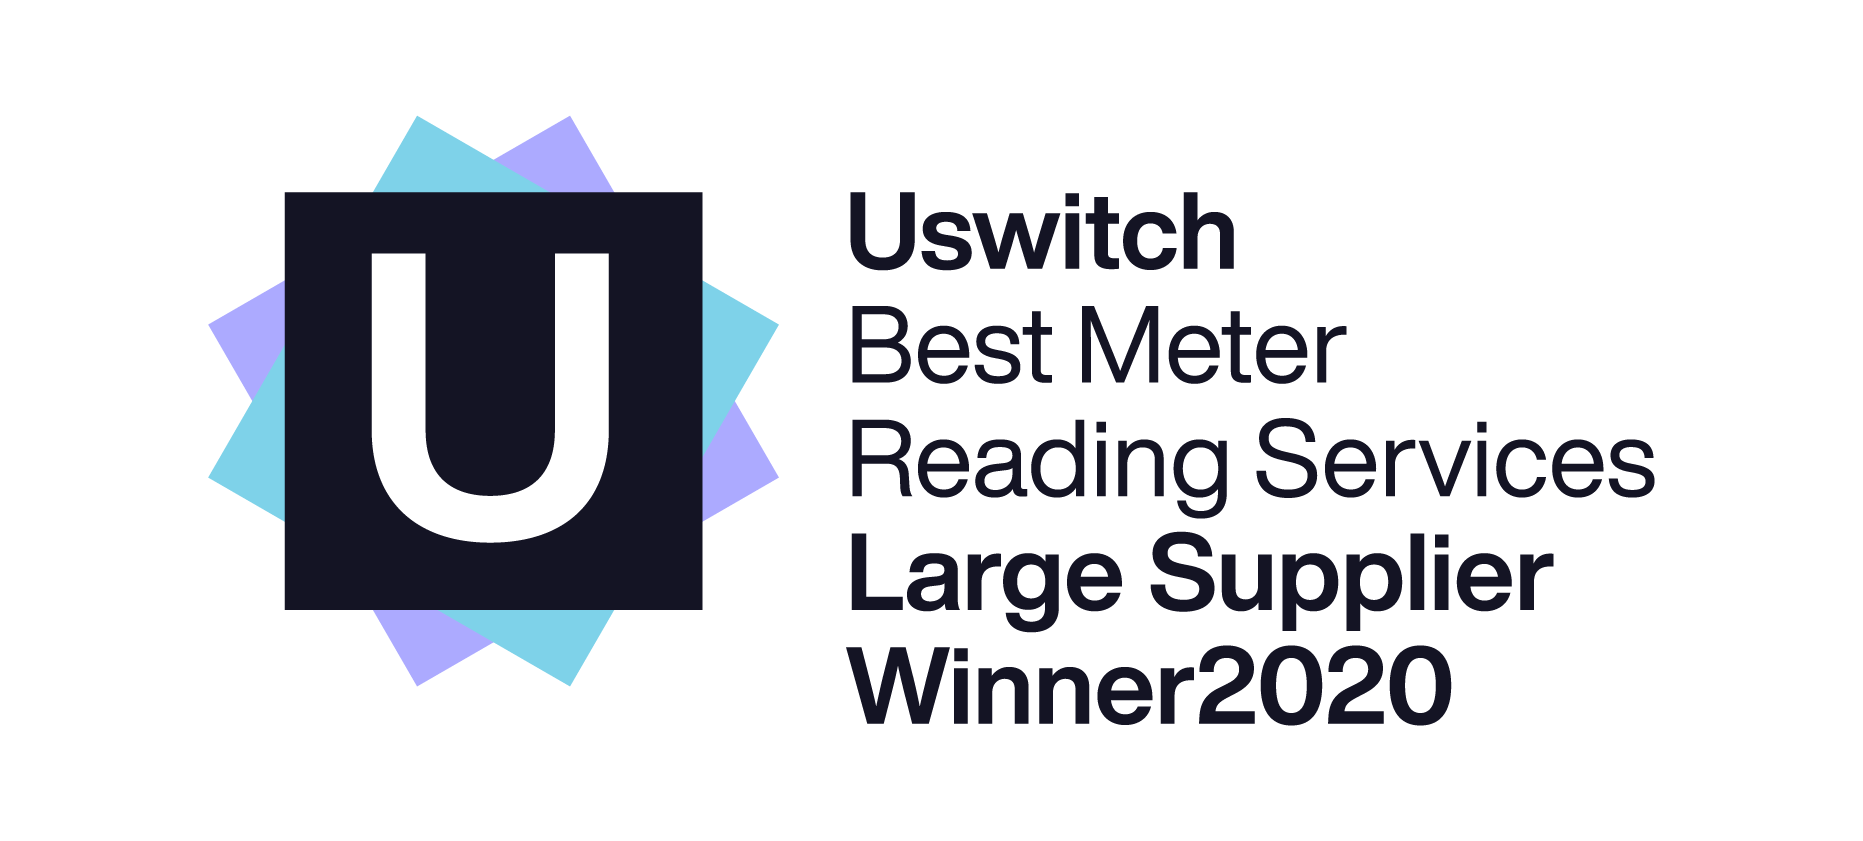 SSE won Uswitch Best Meter Reading Services for a Large Supplier for 2020